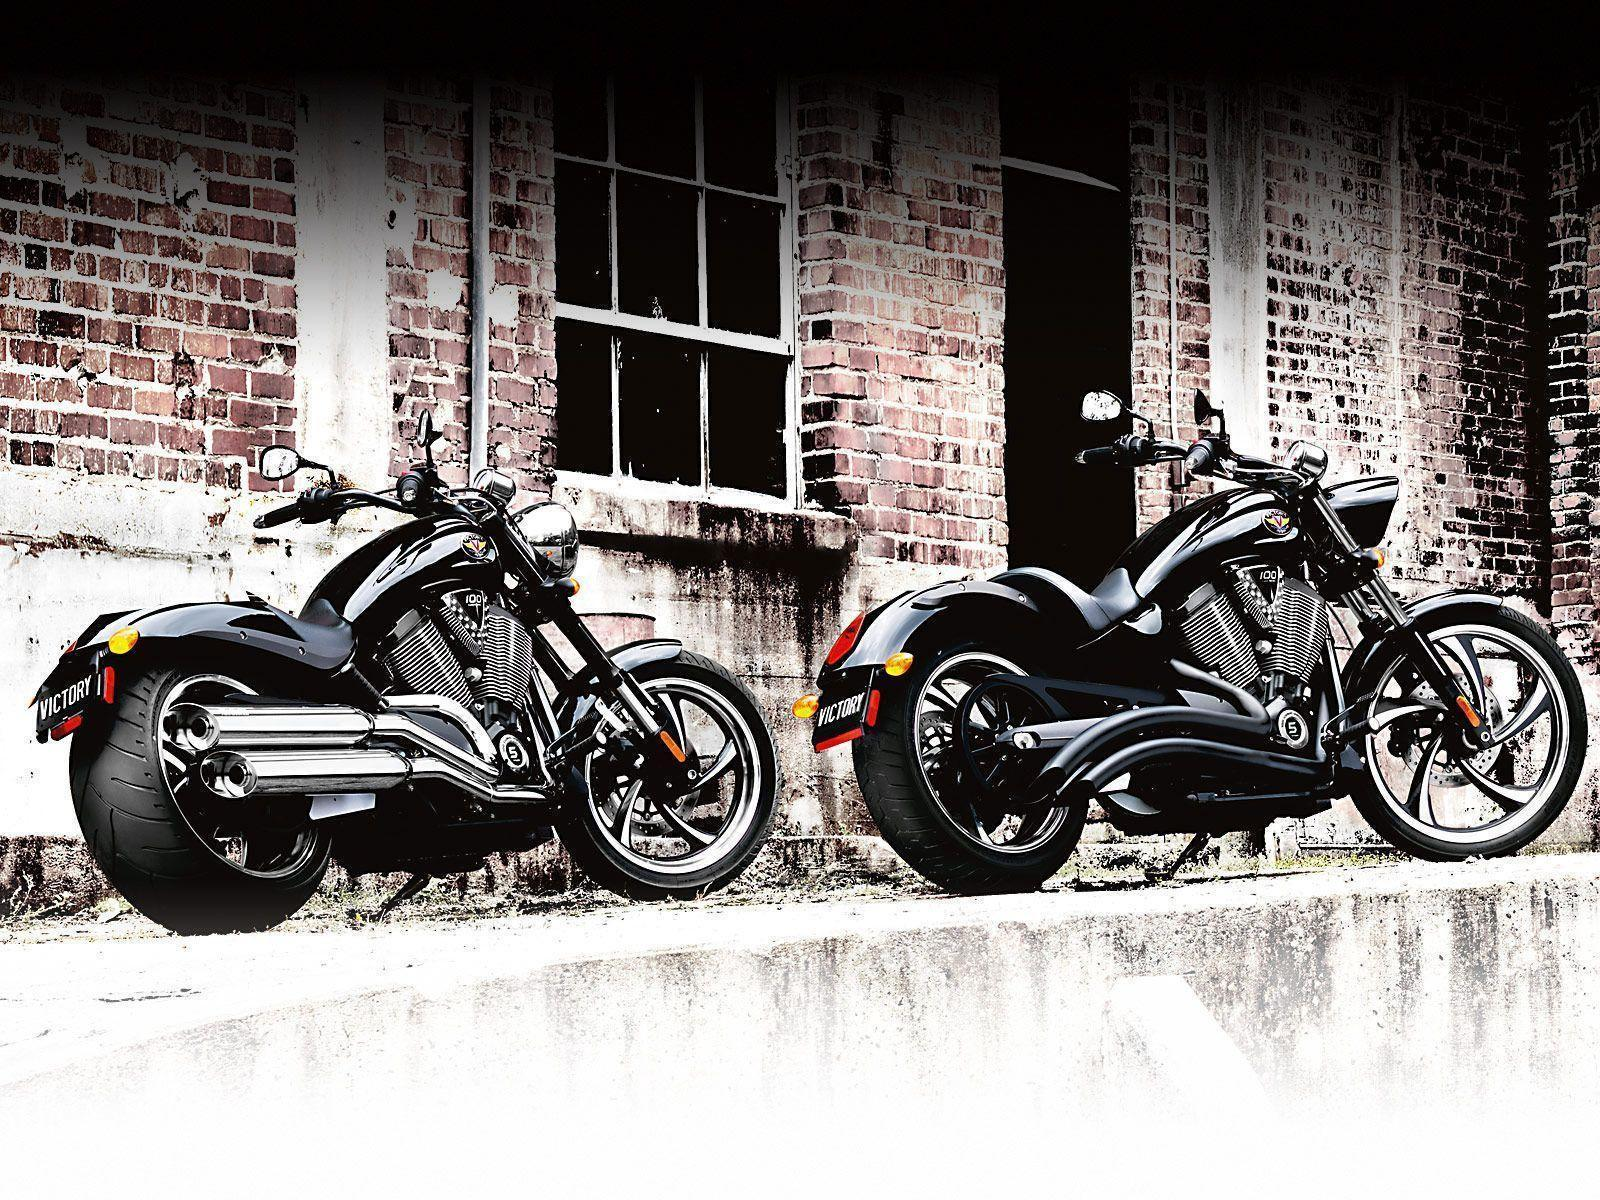 motorcycles photo wallpapers - photo #26